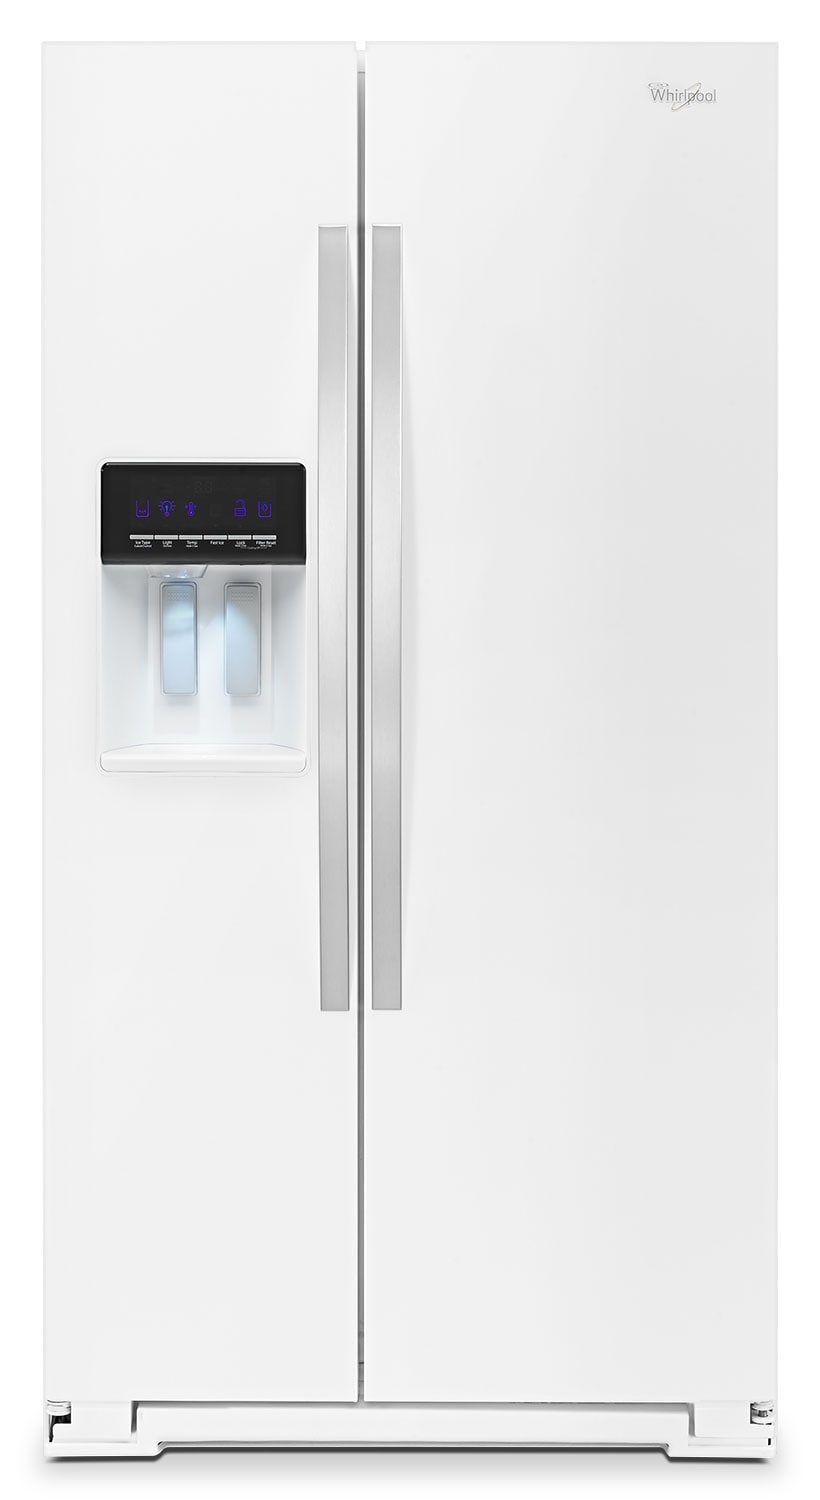 Refrigerators and Freezers - Whirlpool 26 Cu. Ft. Side-by-Side Refrigerator – White Ice